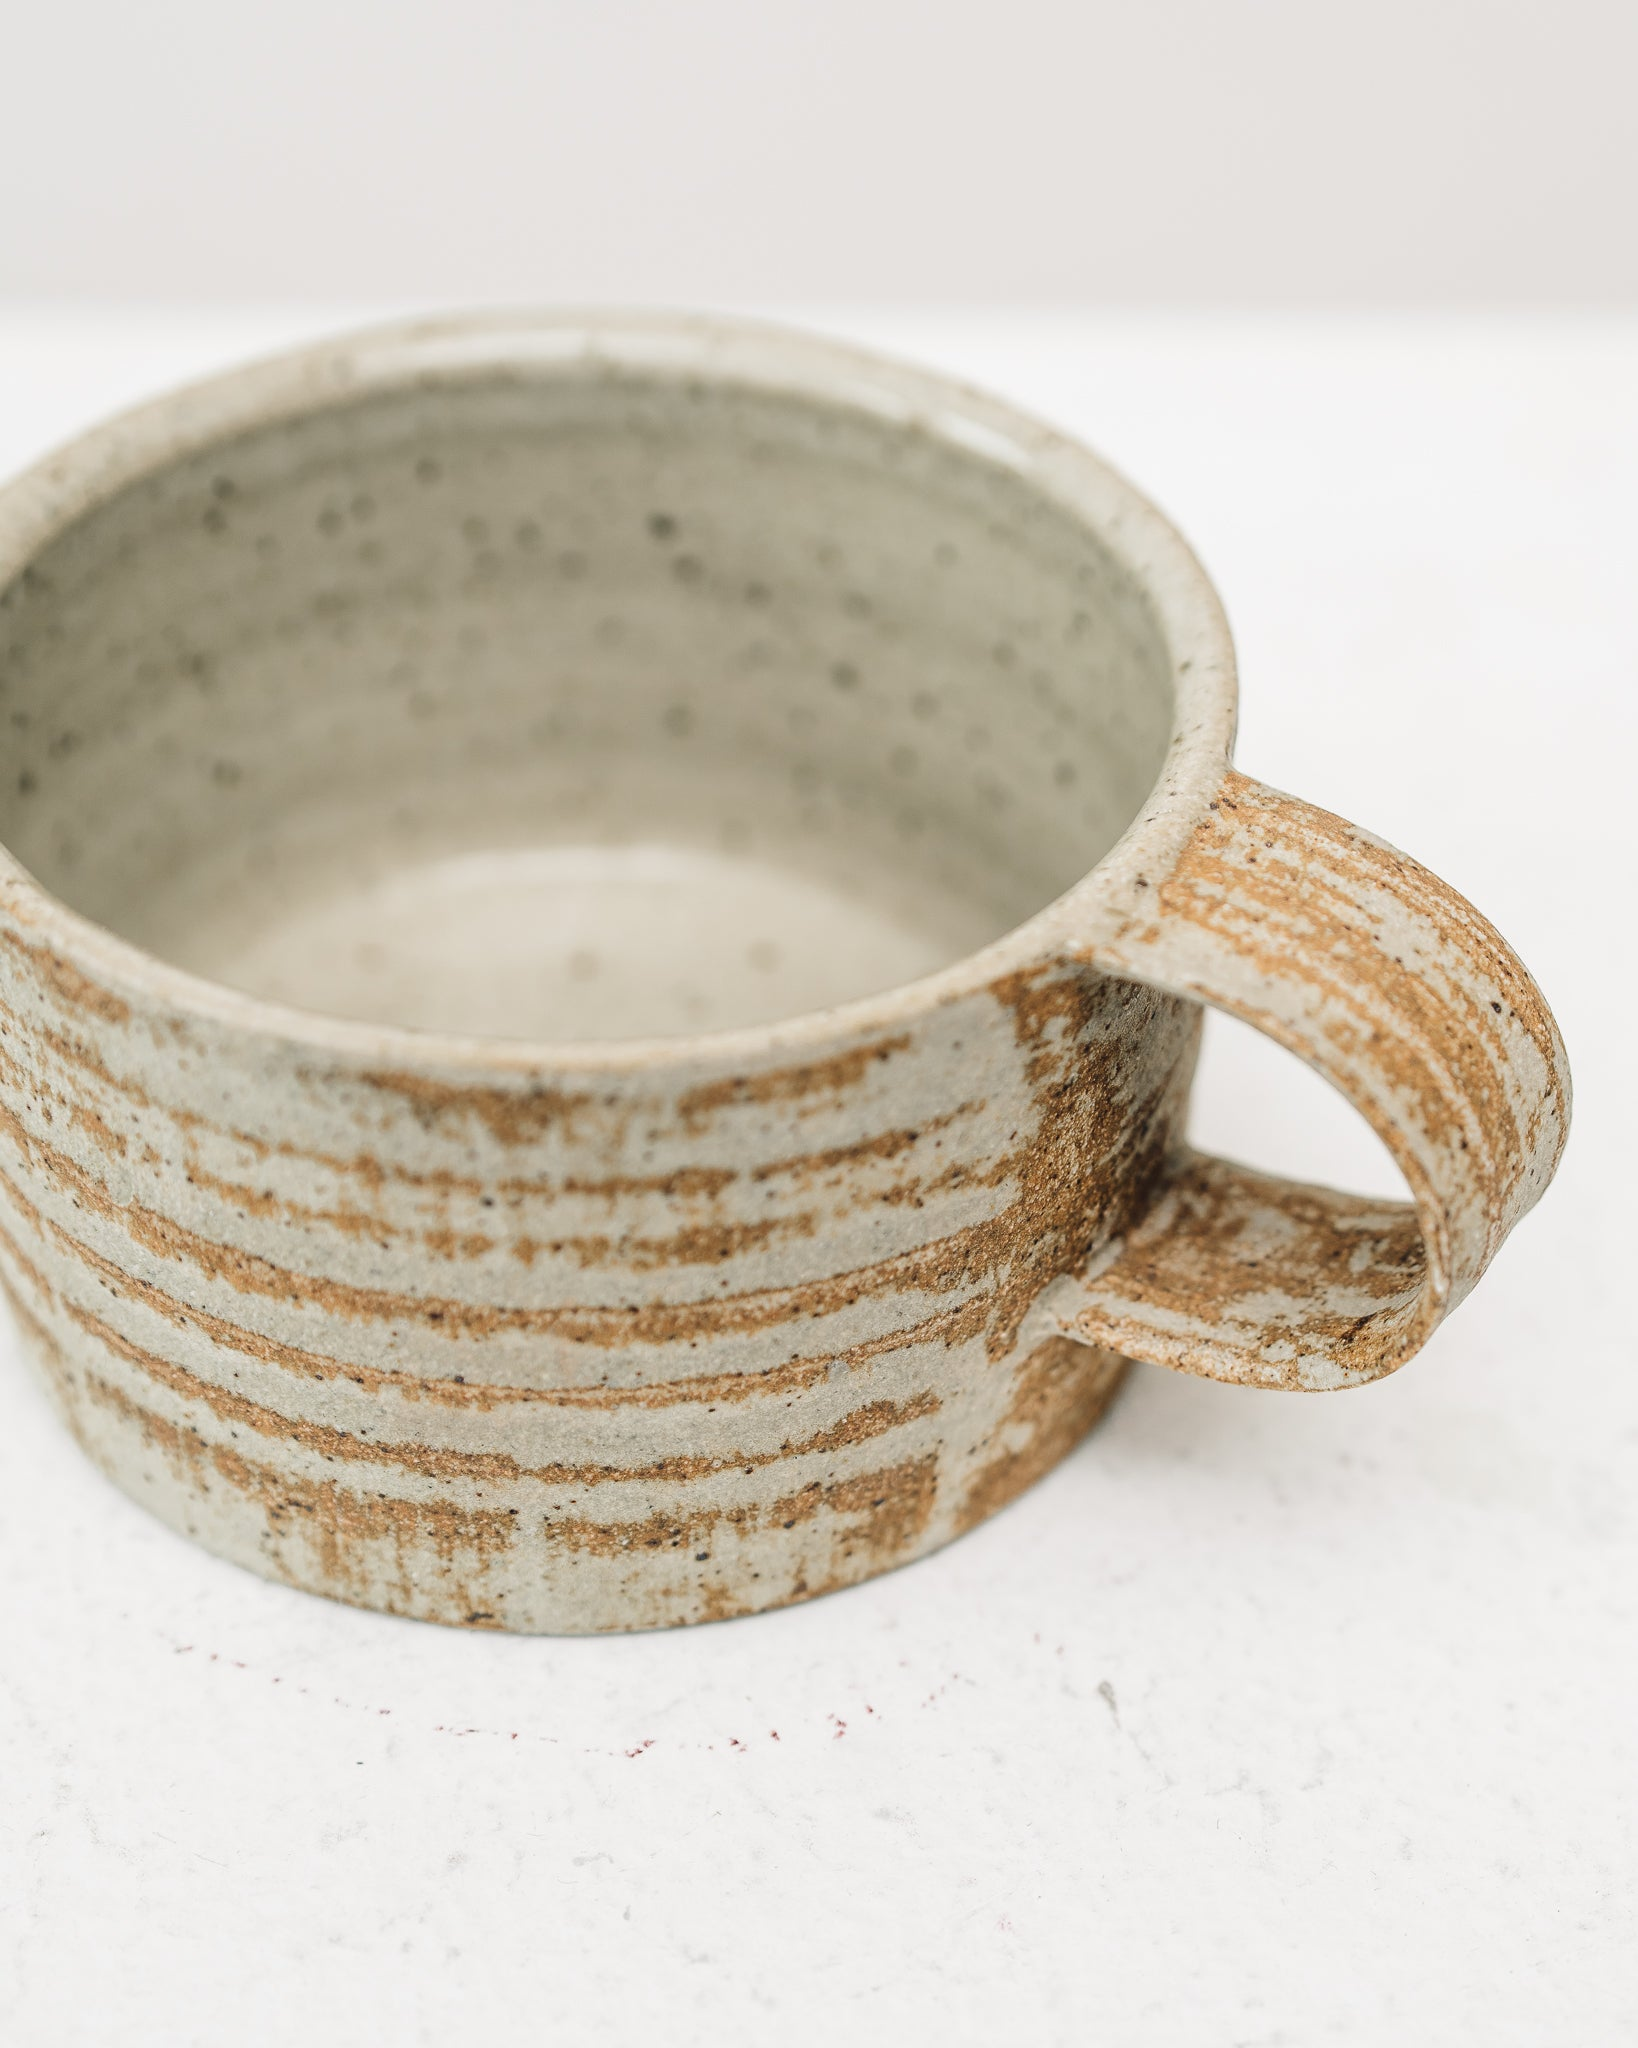 Natasha Alphonse Reduction Fired Mugs